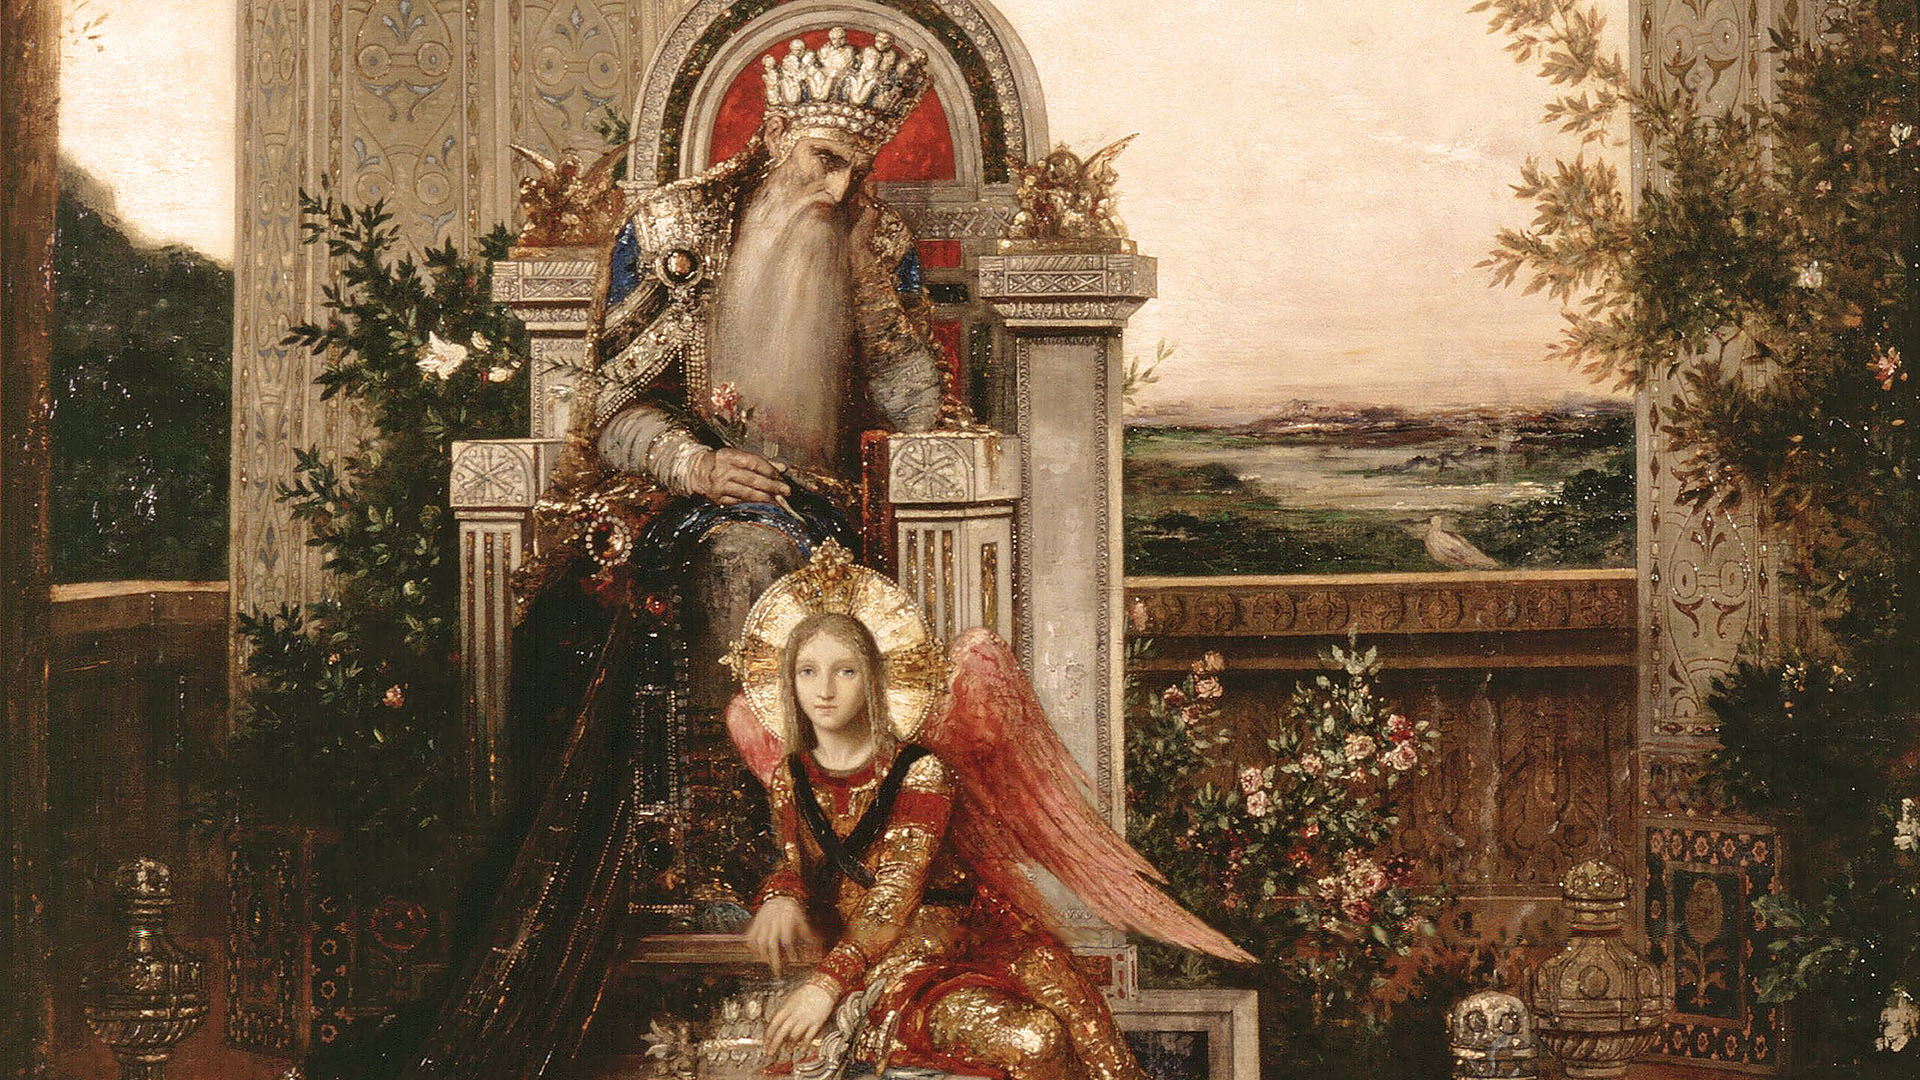 Gustave Moreau - King david 1920x1080